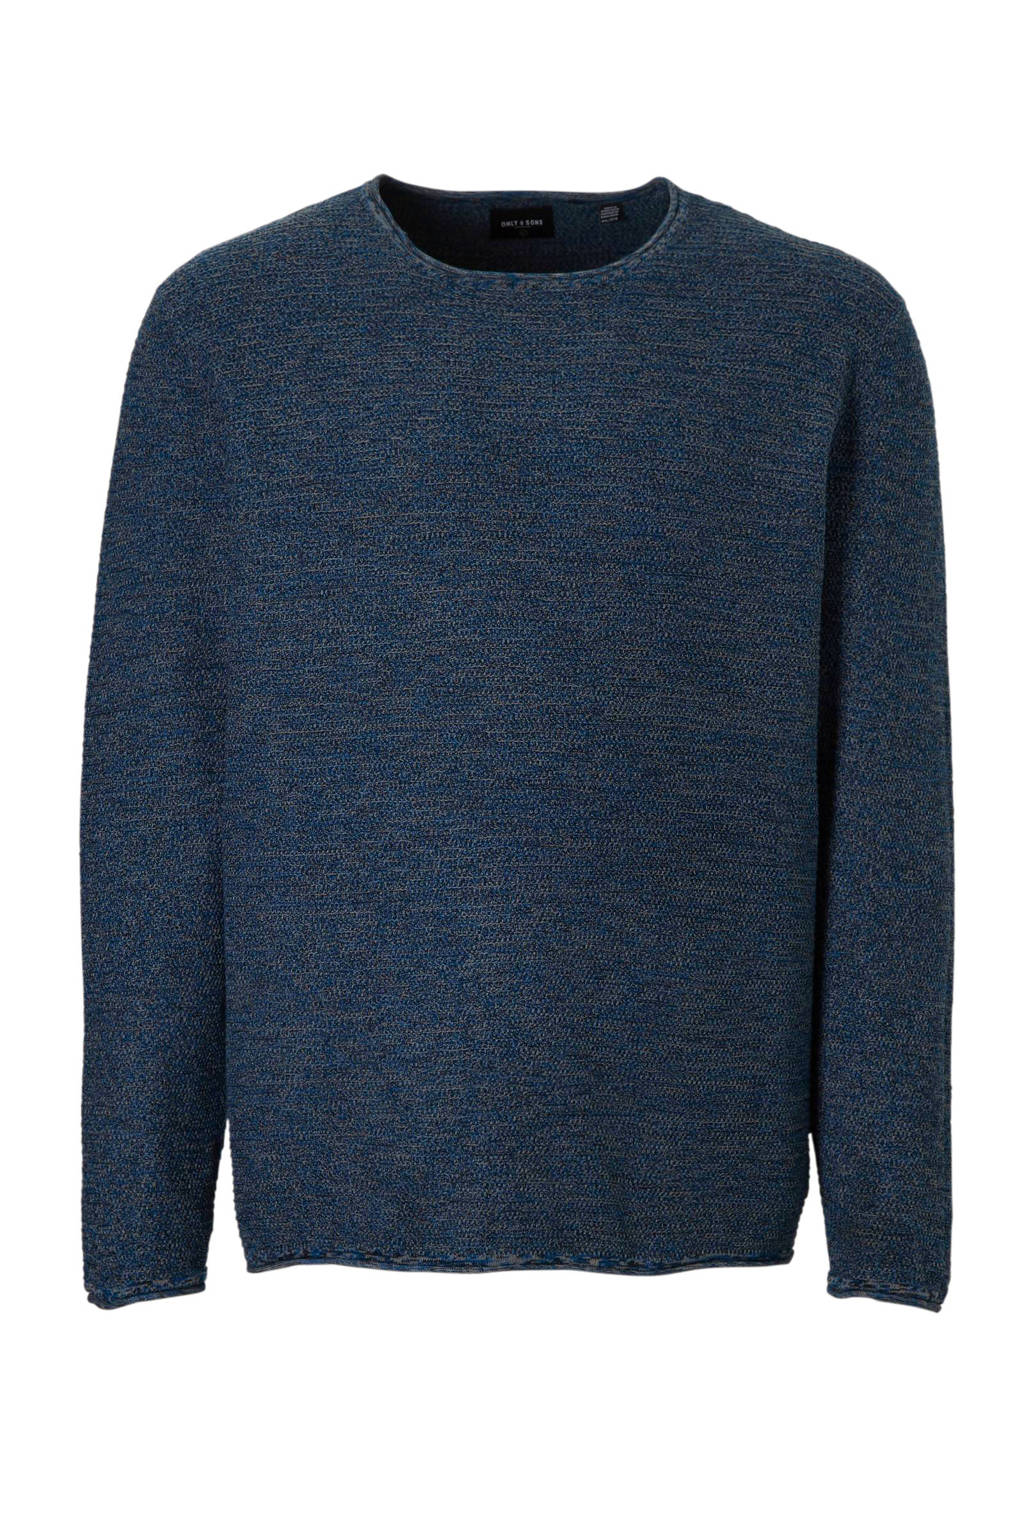 Only & Sons PLUS plussize trui, Blauw